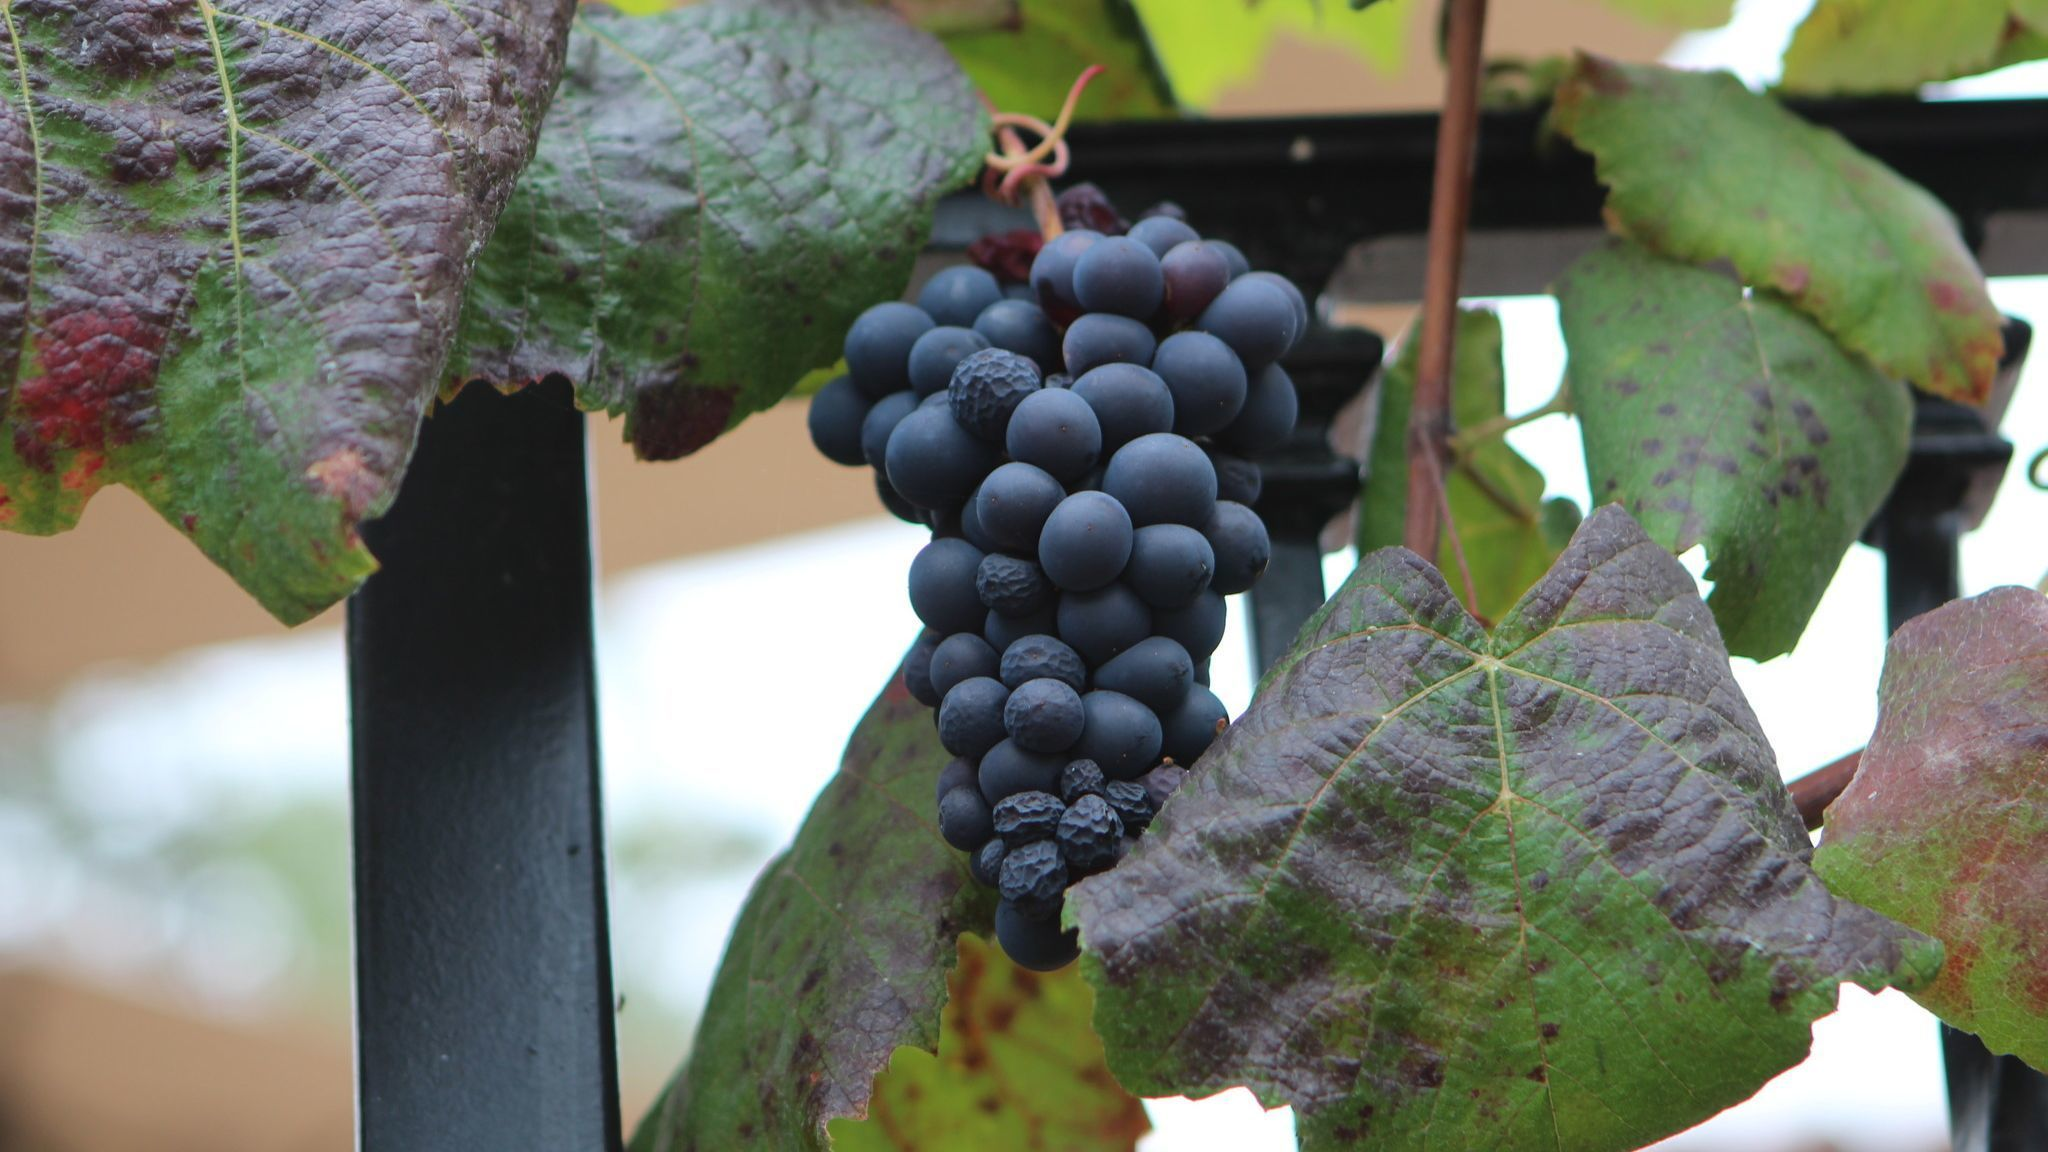 A bunch of purple grapes grows on the railings in Erin McConkey's backyard.